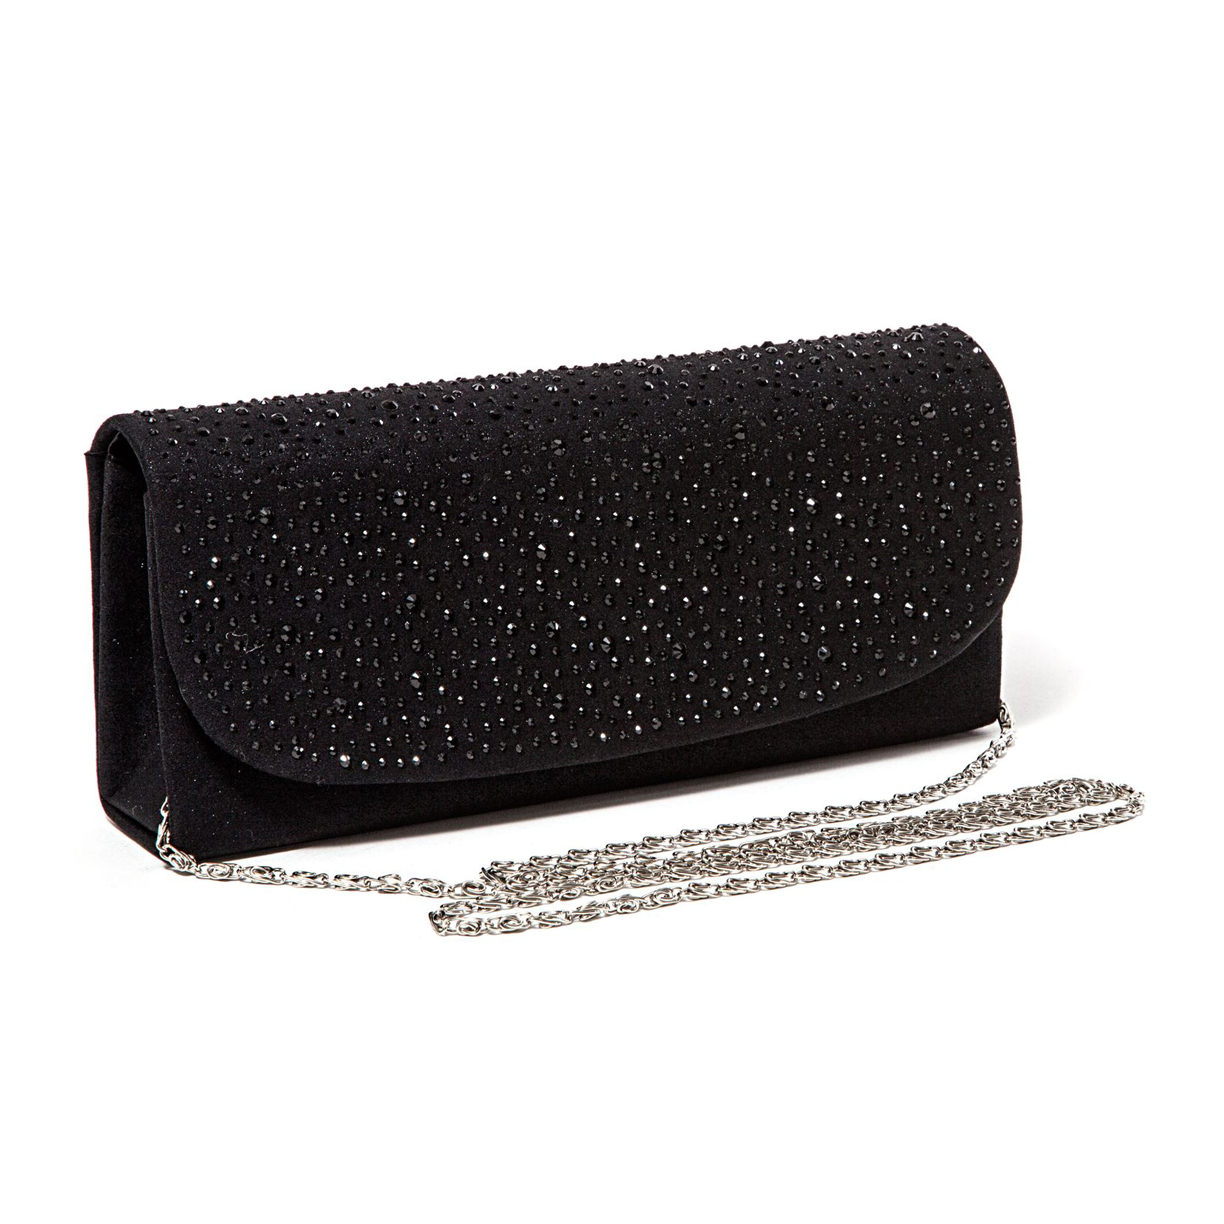 LADY COUTURE BAG ONYX BLACK